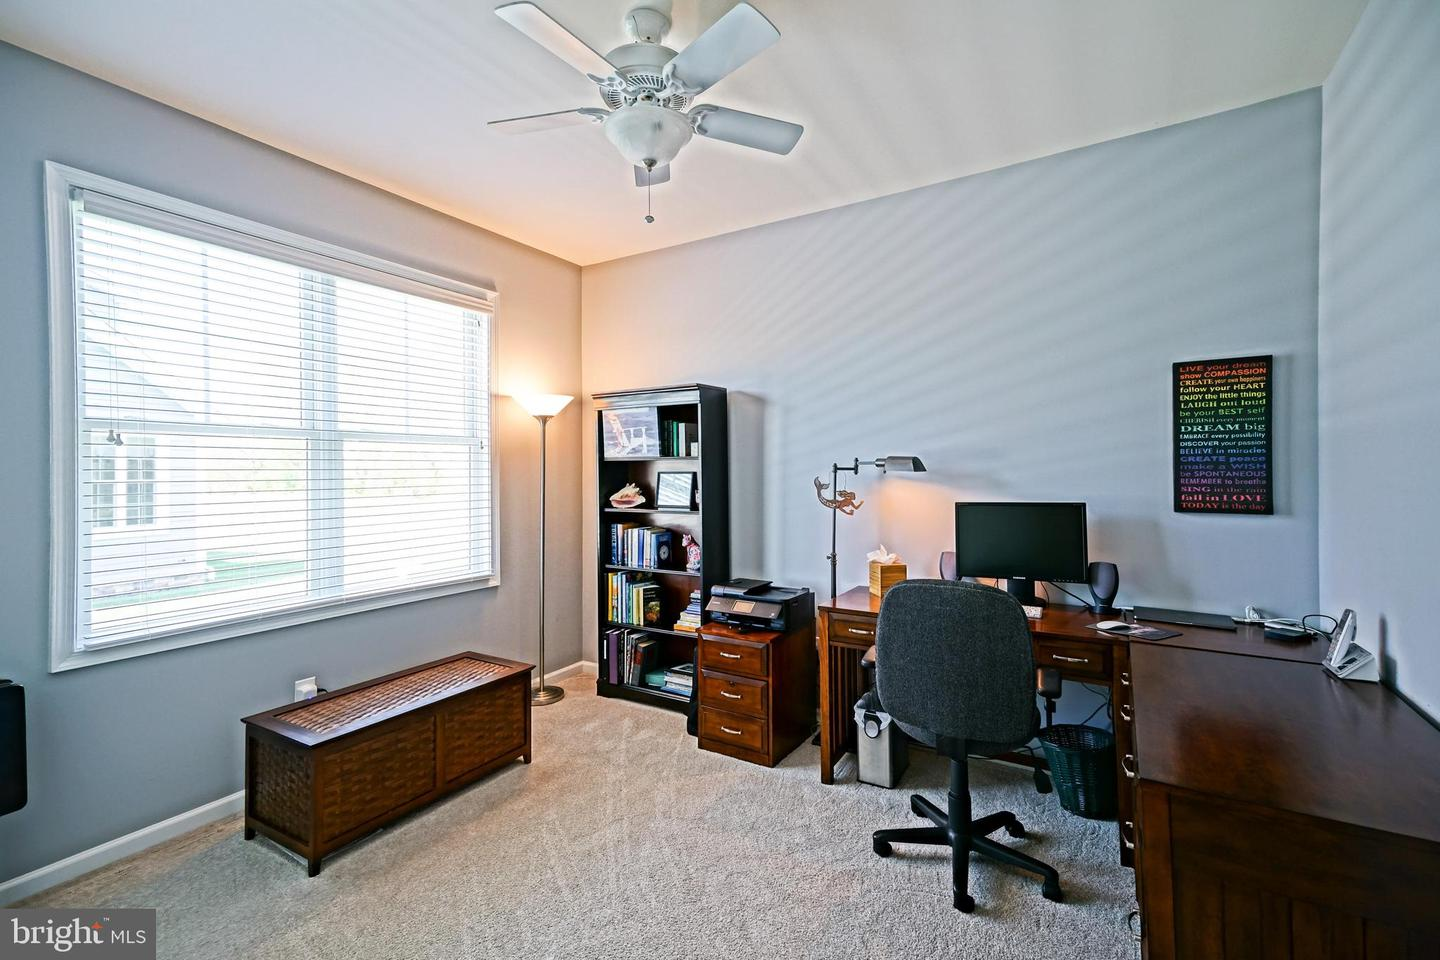 DESU139128-301667383812-2019-08-05-10-43-56 35222 Overfalls Dr N | Lewes, DE Real Estate For Sale | MLS# Desu139128  - Lee Ann Group